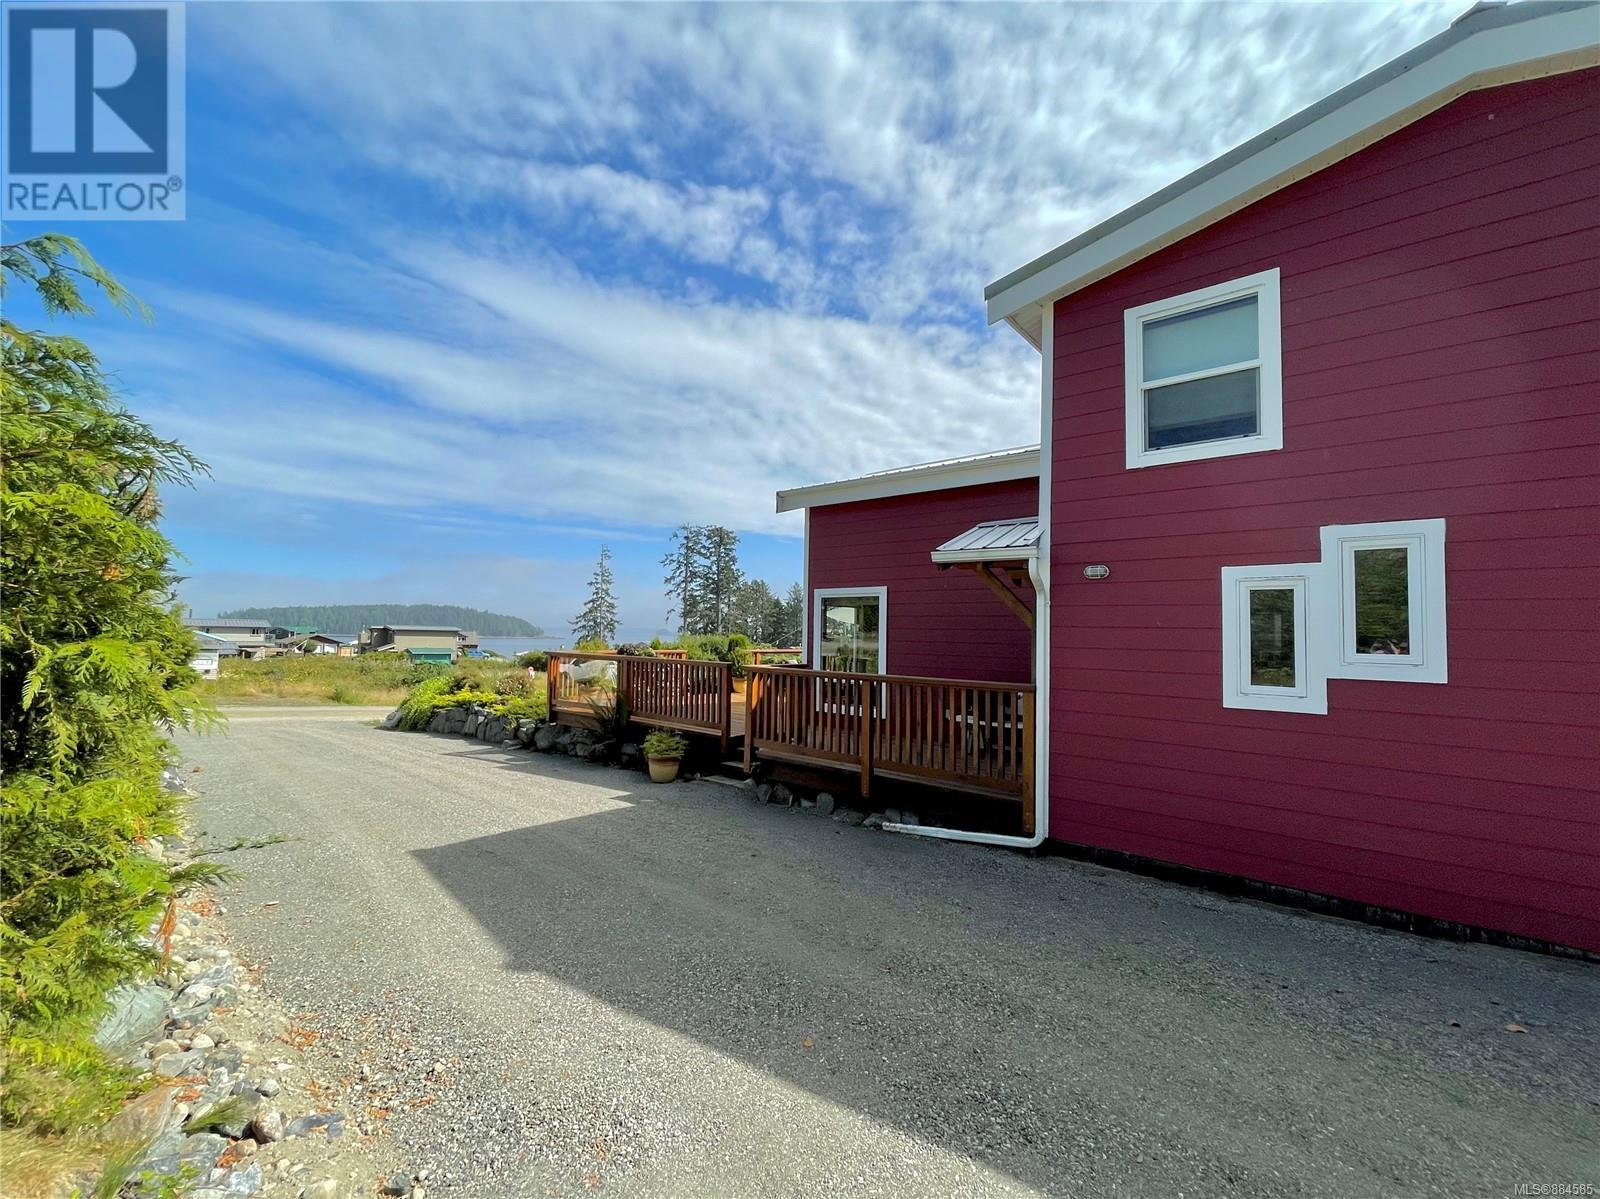 MLS® #884585 - Ucluelet House For sale Image #26